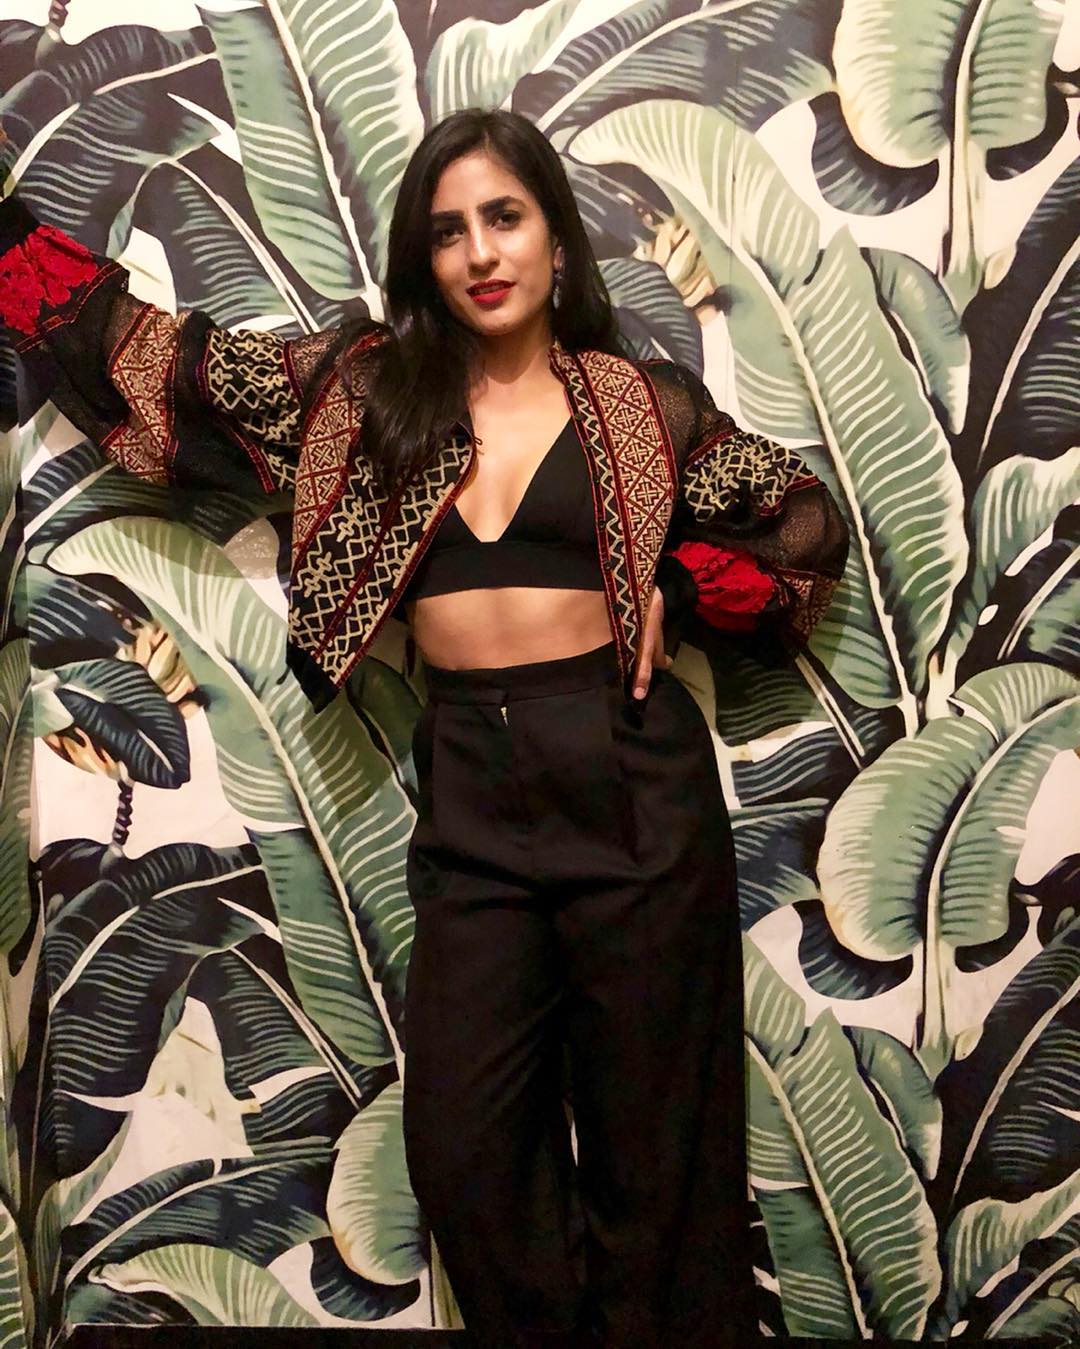 keerti kataria bolero jacket  stylish girls on instagram not bloggers